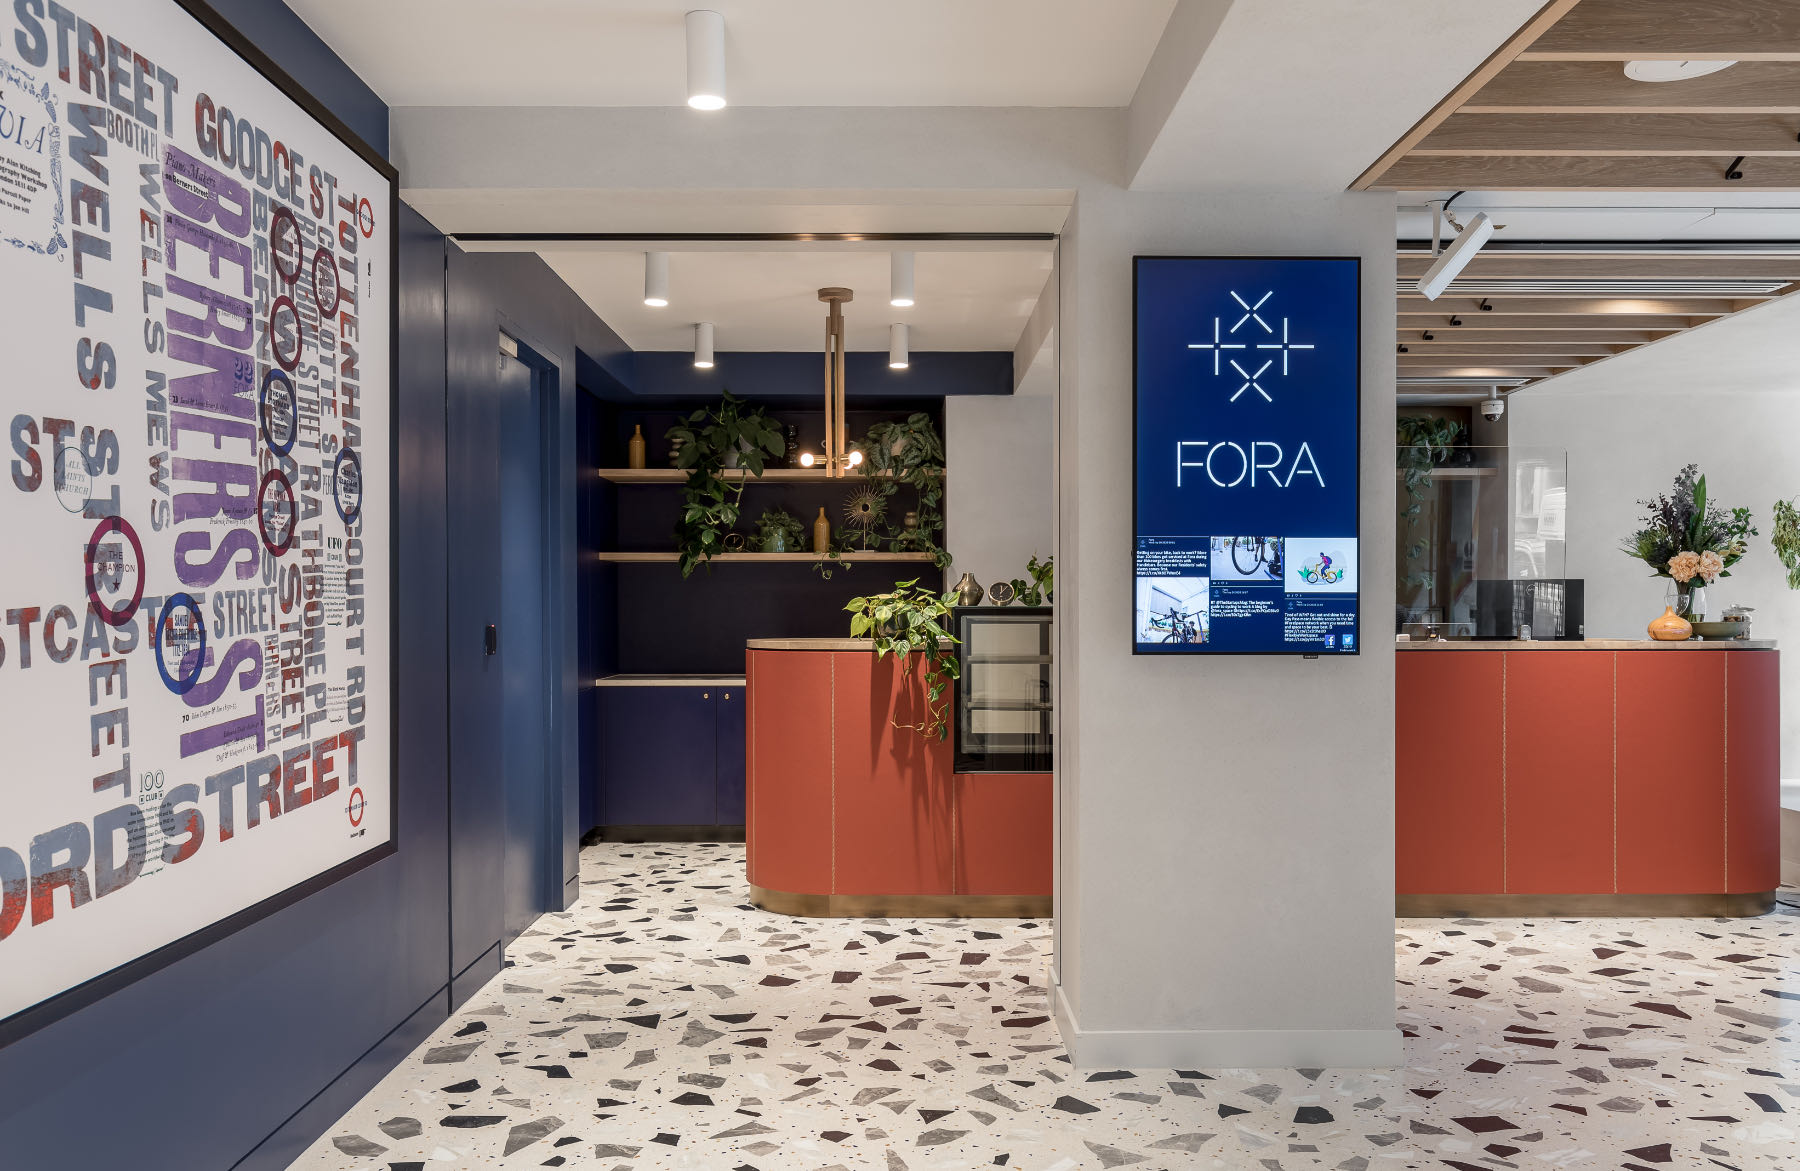 A Look Inside Fora's New London Coworking Space